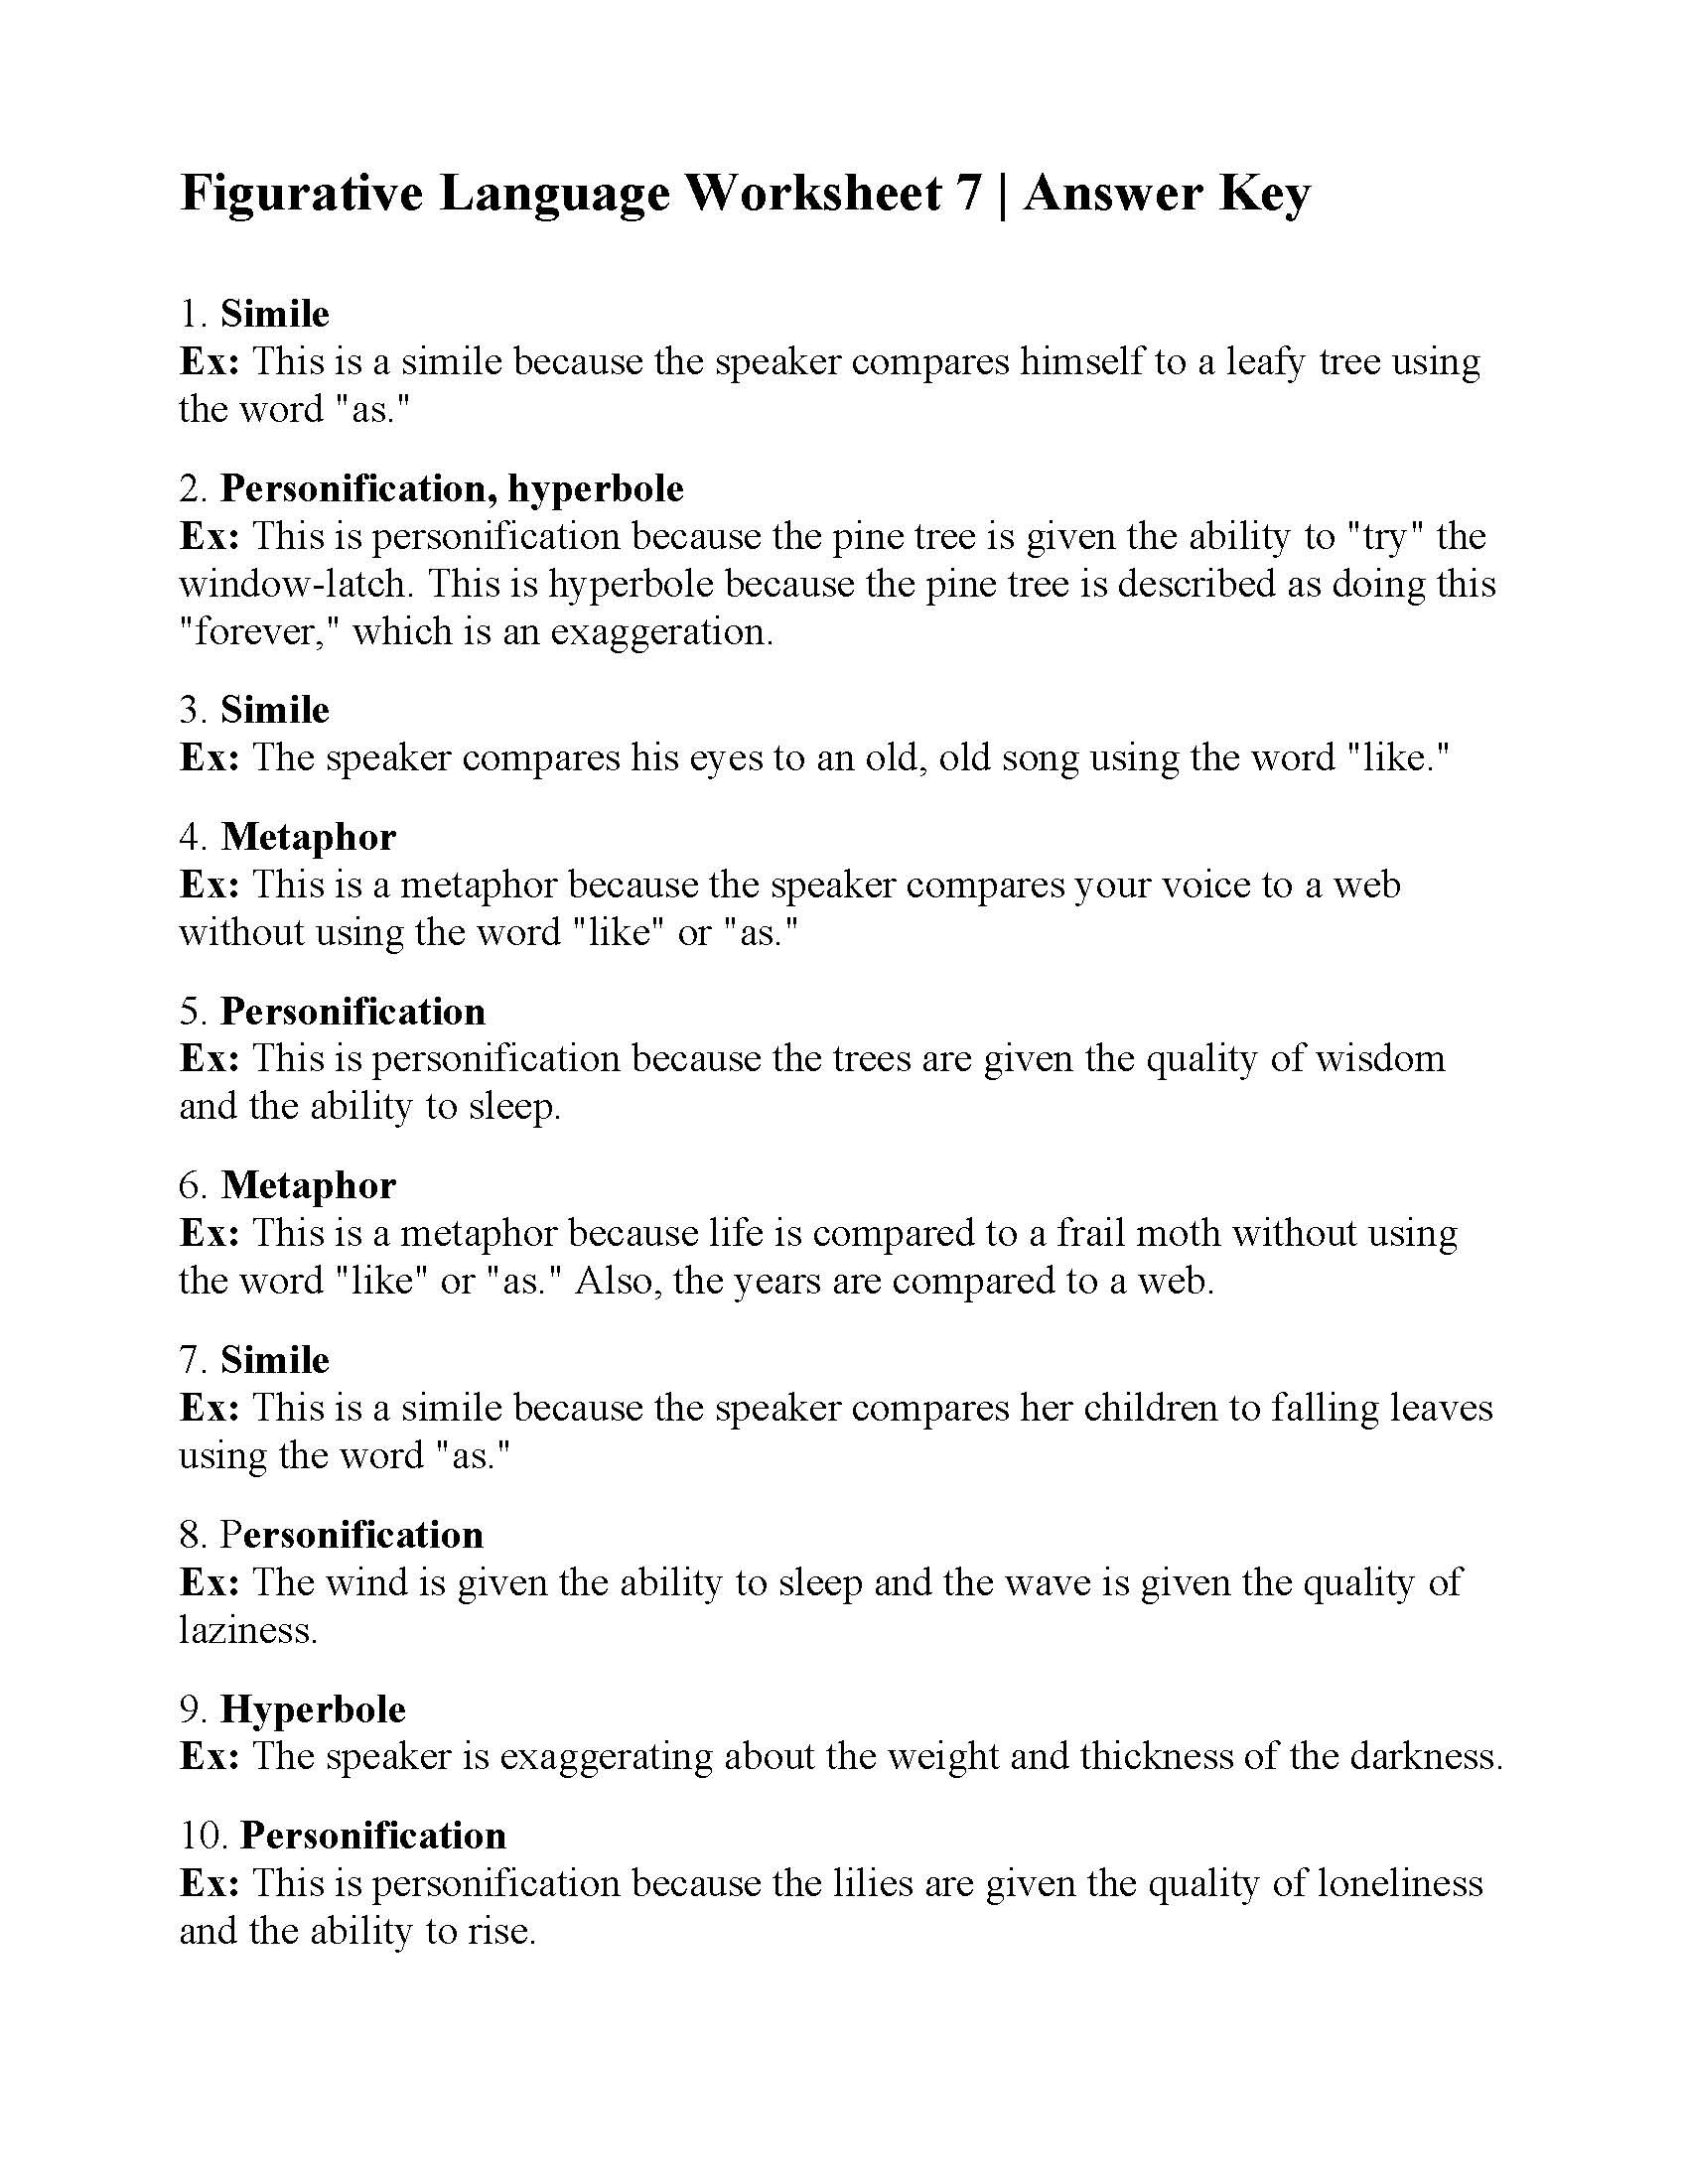 Free Printable Figurative Language Worksheets Figurative Language Worksheet Answers Printable Worksheets